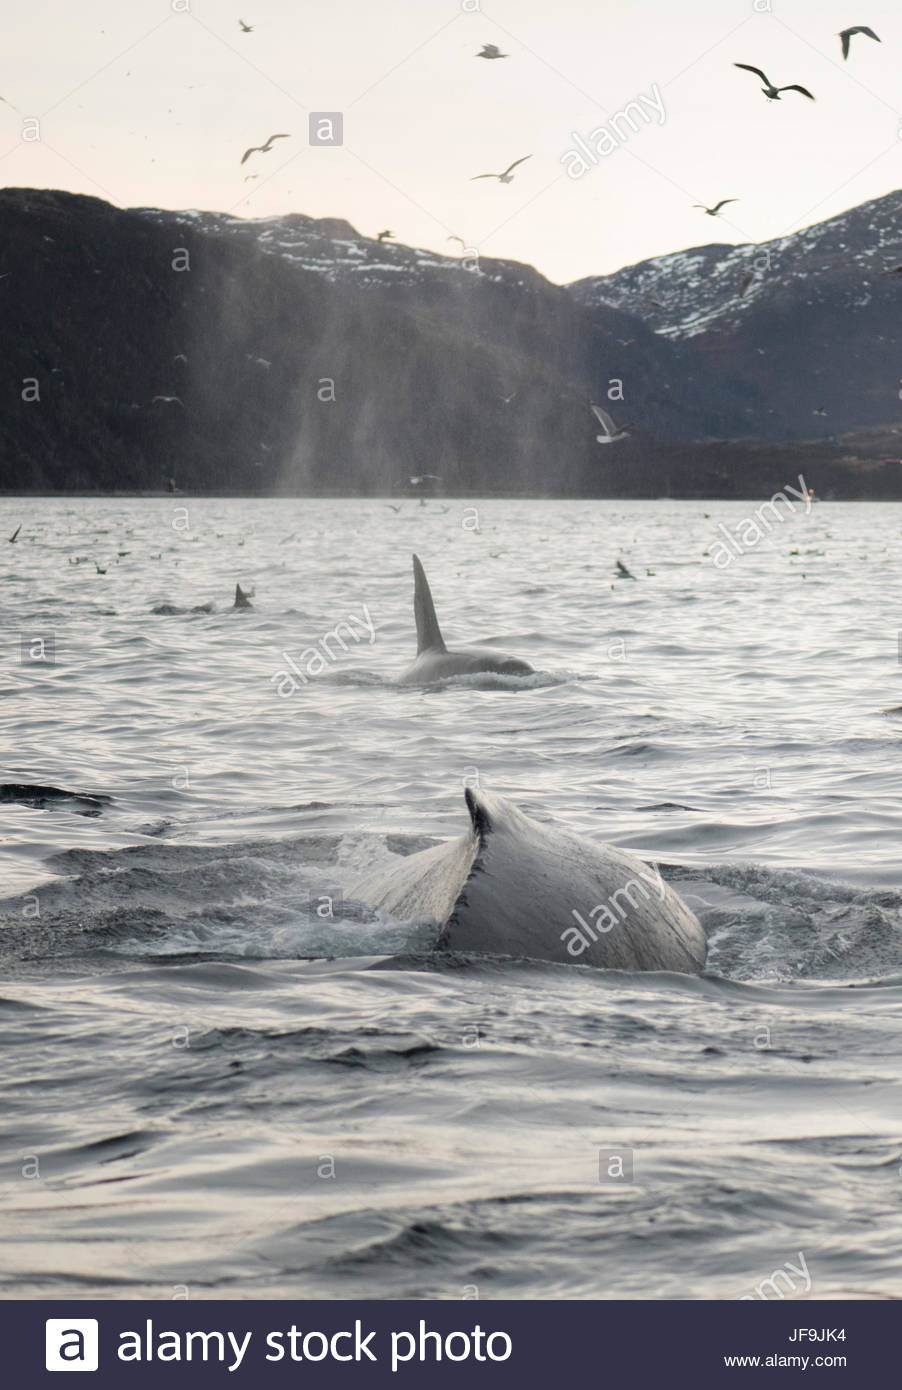 A humpback whale surfaces with orcas. - Stock Image